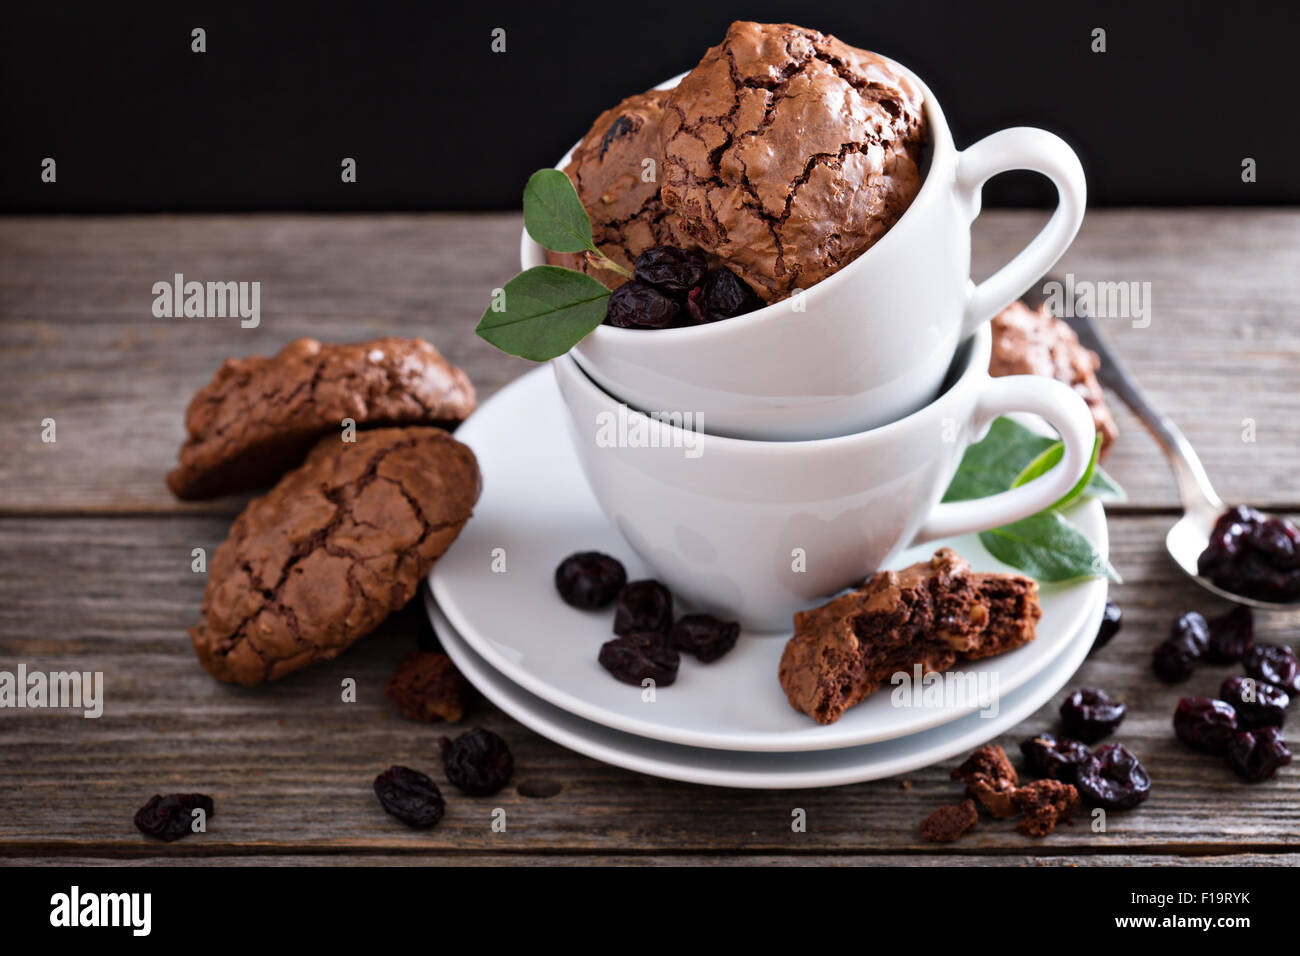 Chocolate walnut cherry cookies in coffee cups - Stock Image